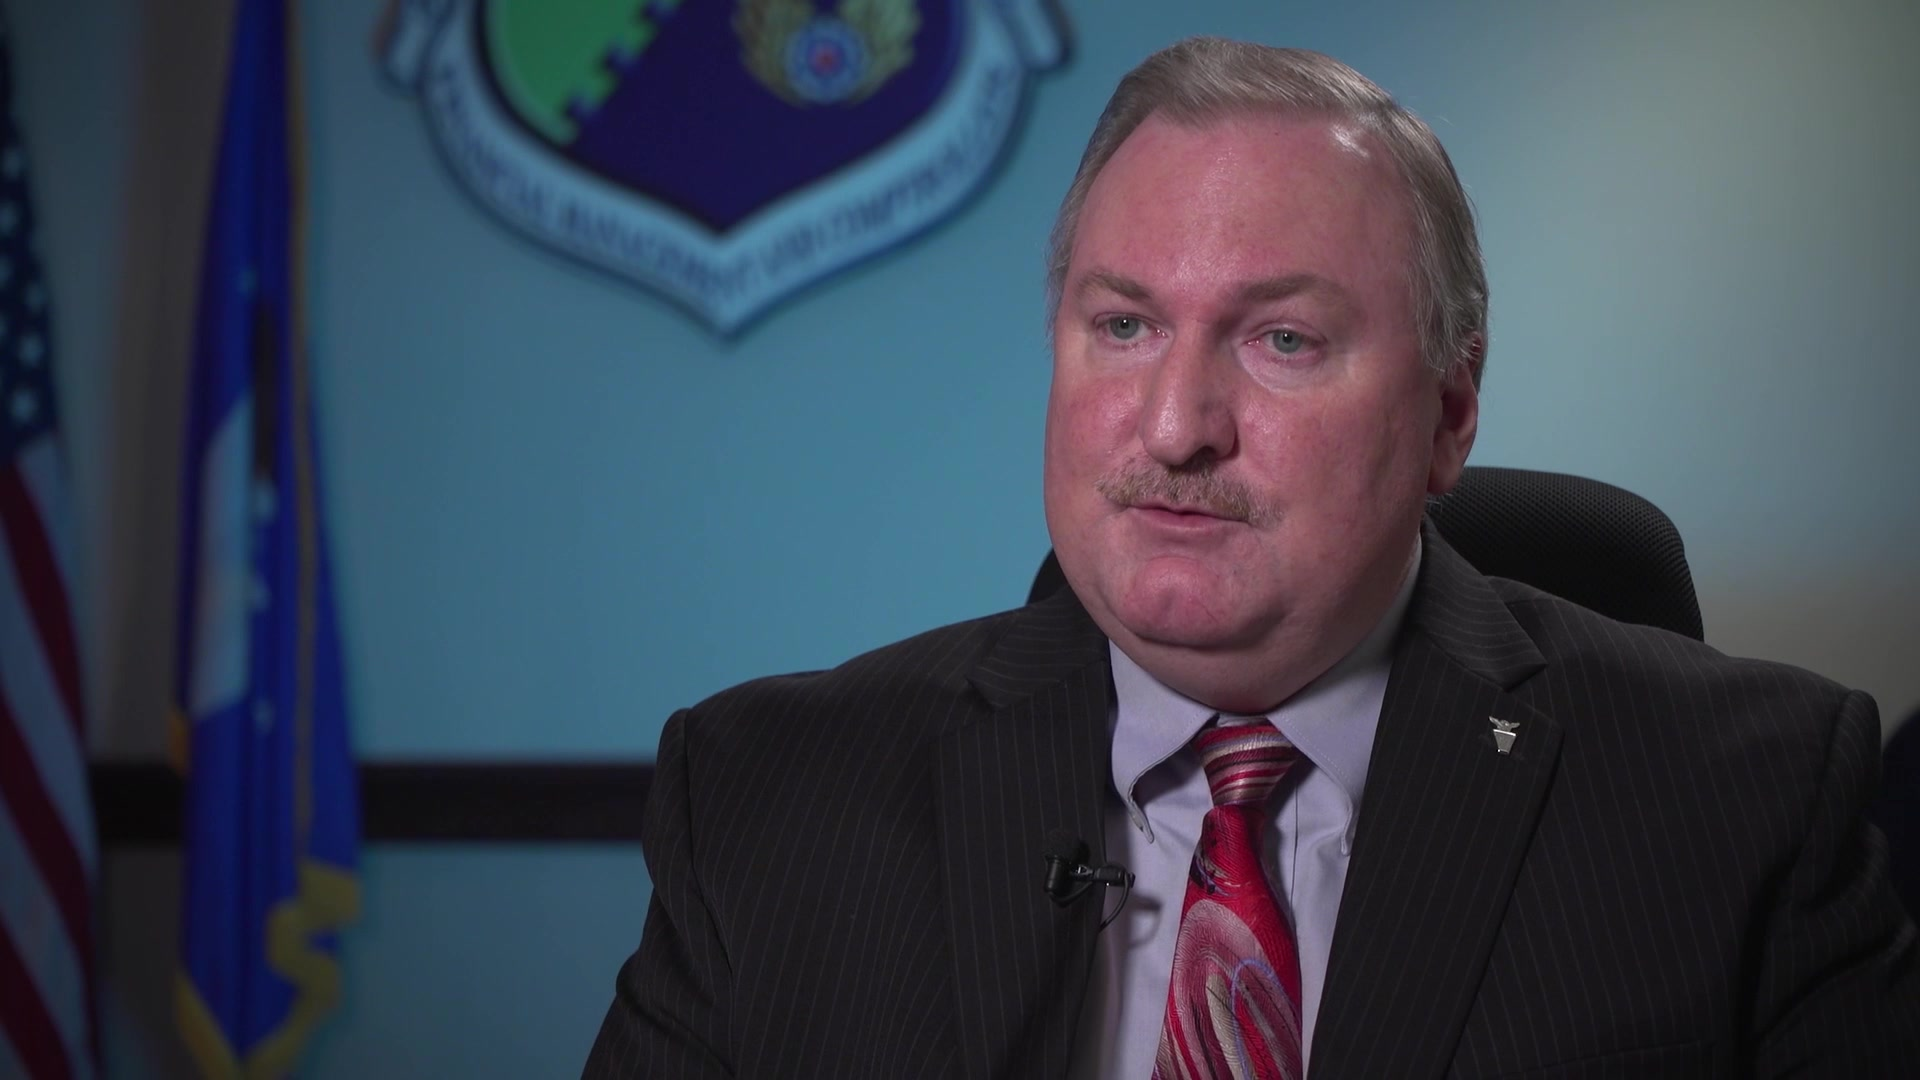 Through the telling of first-person stories, Air Force Materiel Command shares the impact of mentoring as part of the command's mentoring awareness efforts. This interview with Mr. Don Kendrick, AFMC Senior Financial Advisor, shares his perspectives on the importance of mentorship.